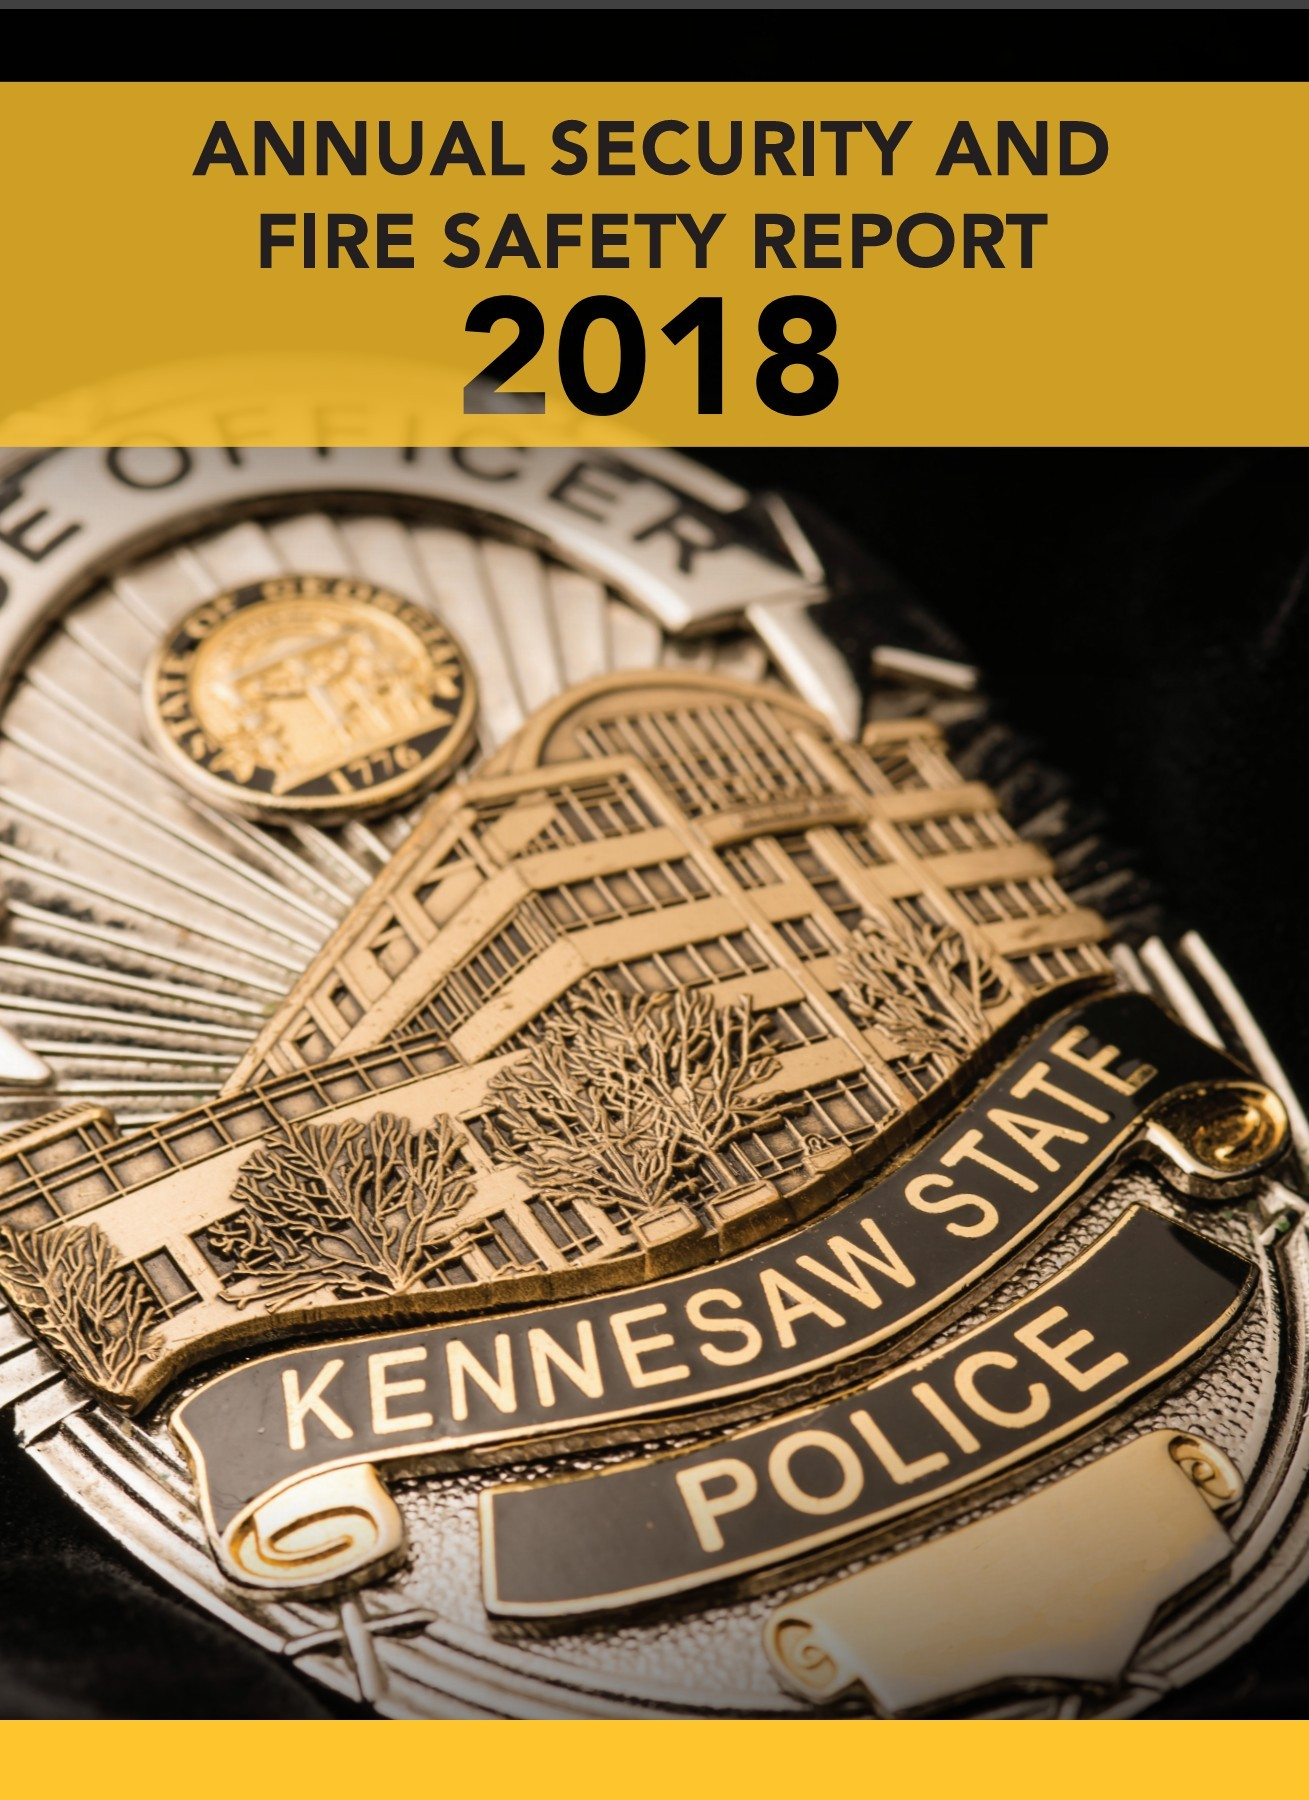 Annual Security and Fire Safety Report 2018